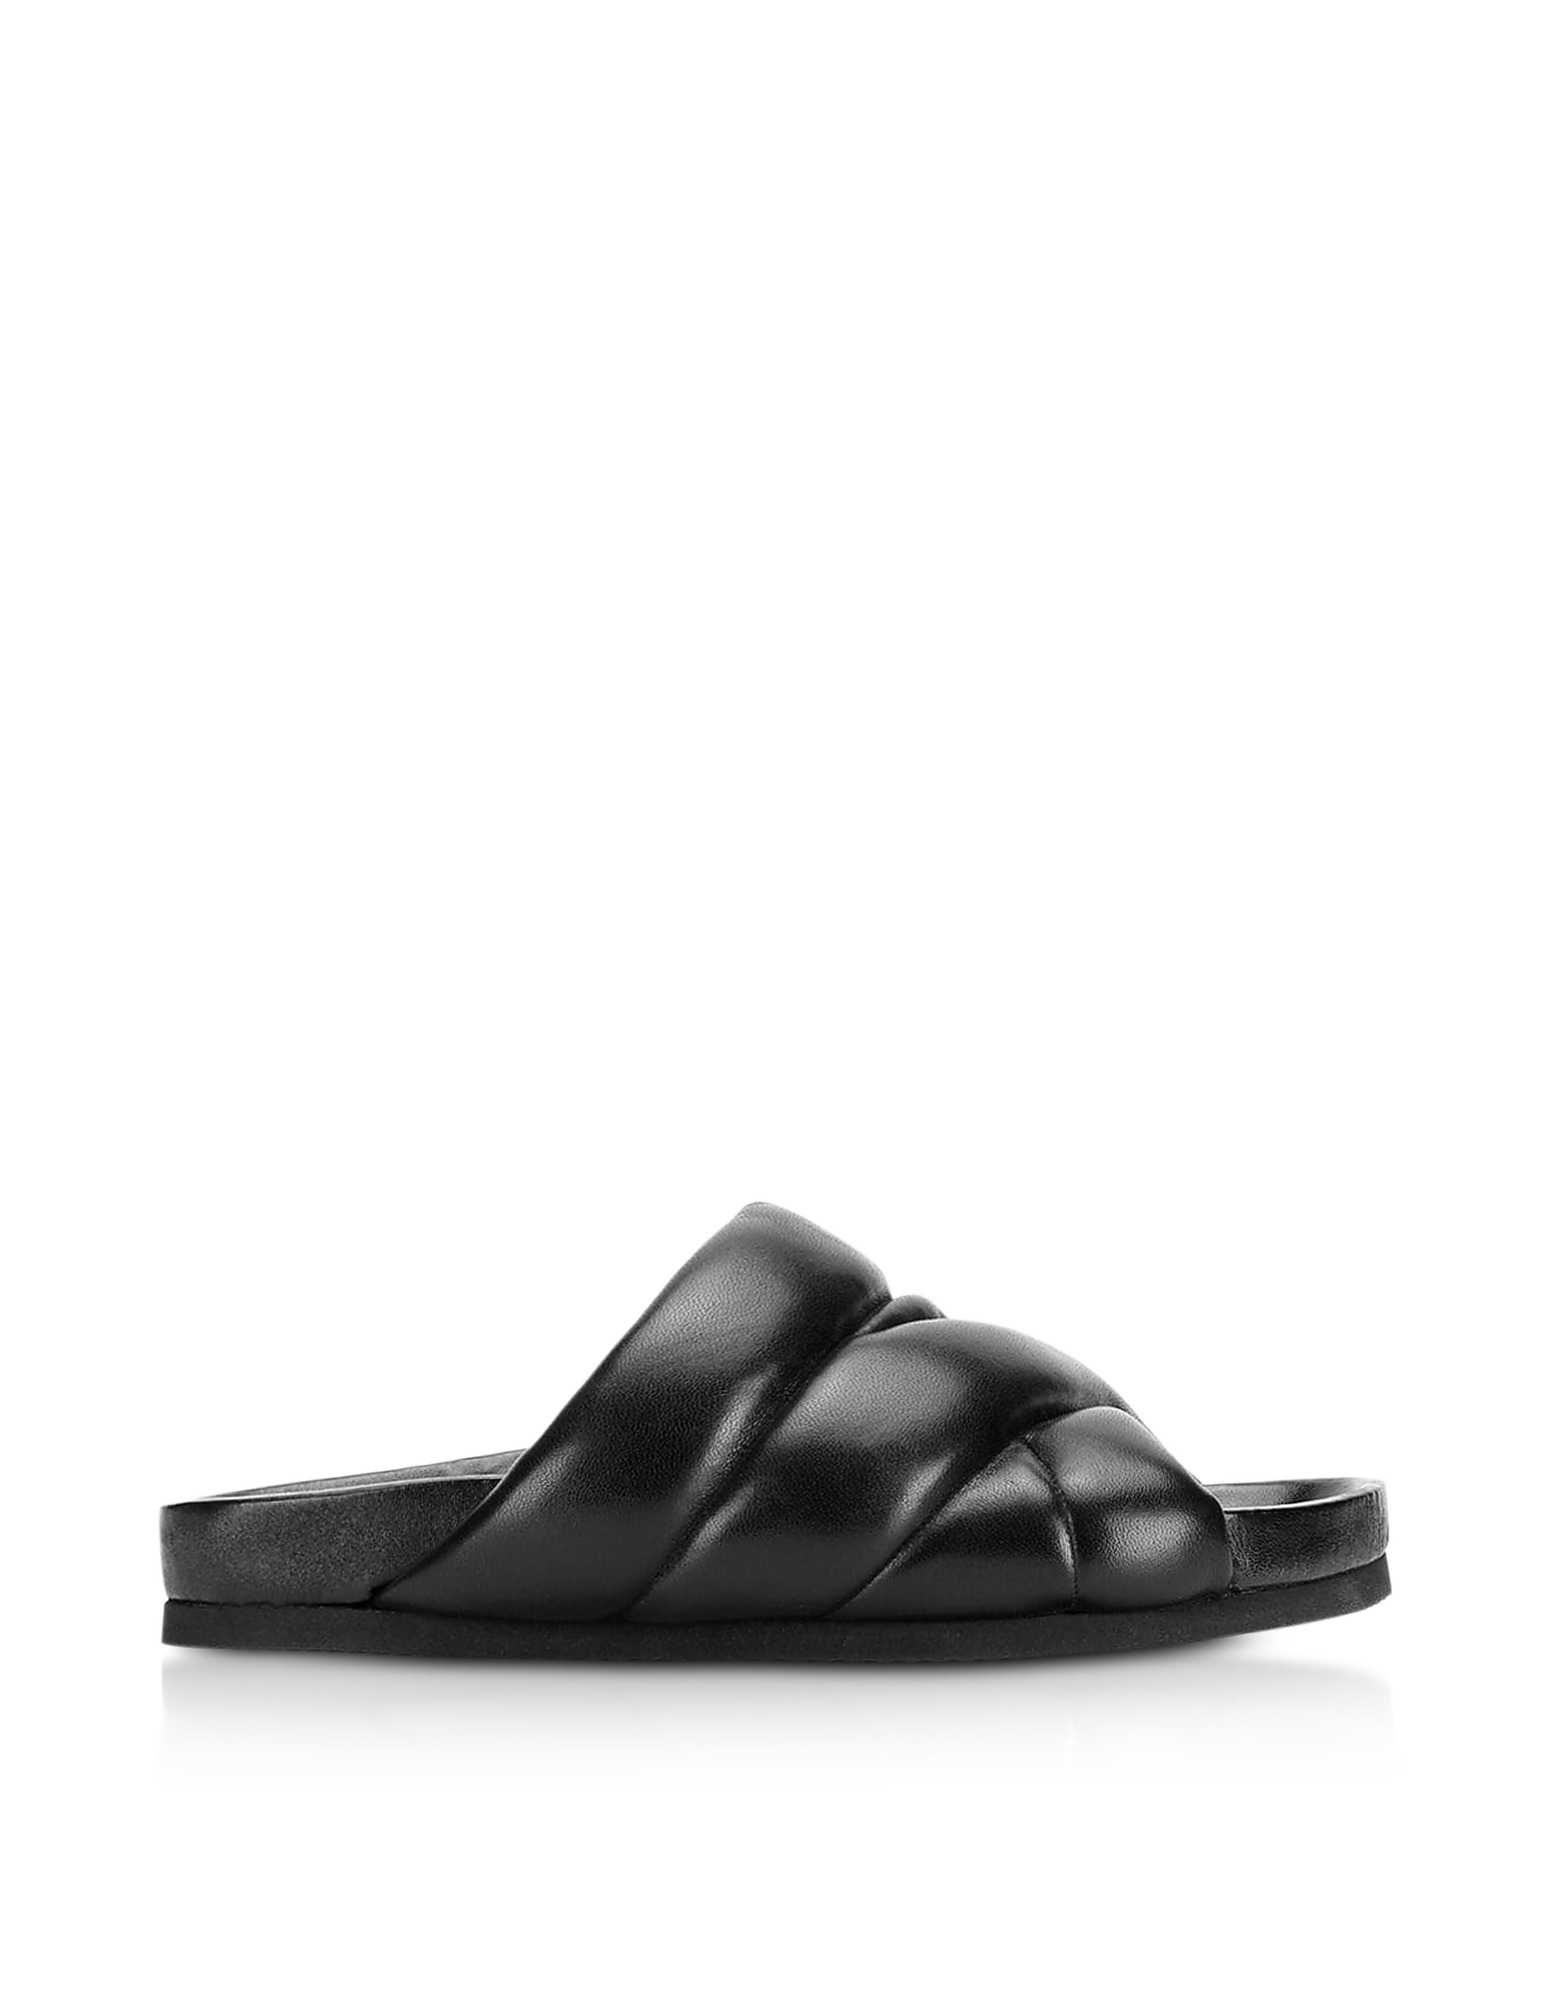 Black Nappa Leather 10mm Puffer Slide Sandals